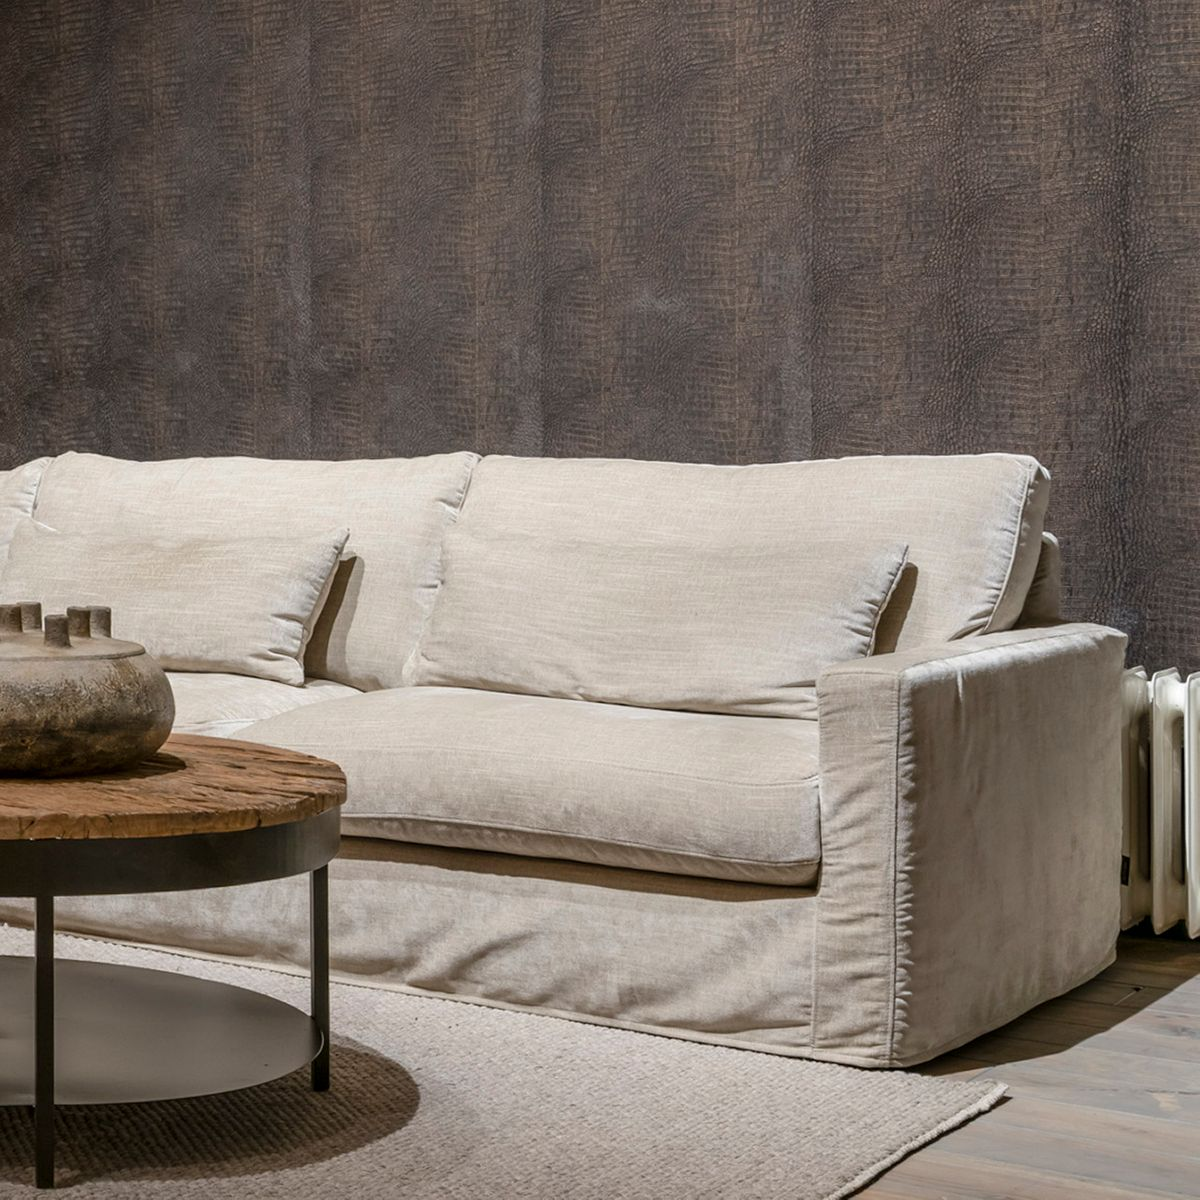 UrbanSofa Cambridge Casia Belize Sand